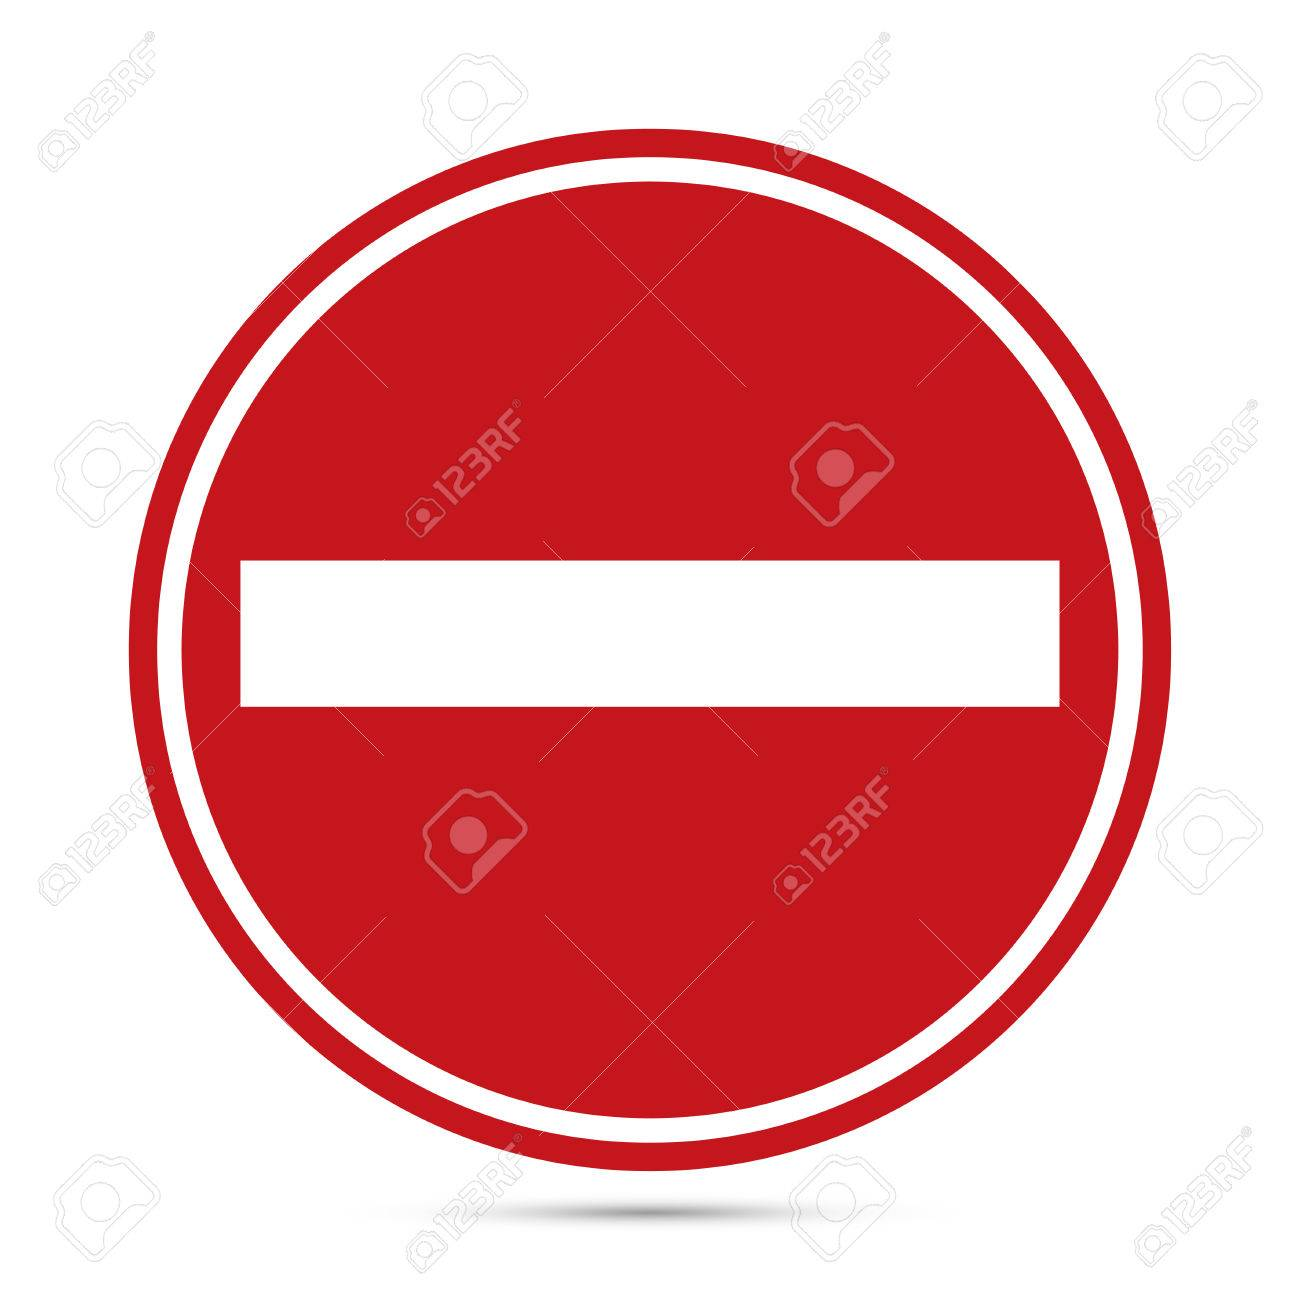 Traffic sign, Warning red circle icon on white background. Prohibition concept, No traffic street symbol. Vector EPS10 - 51375930